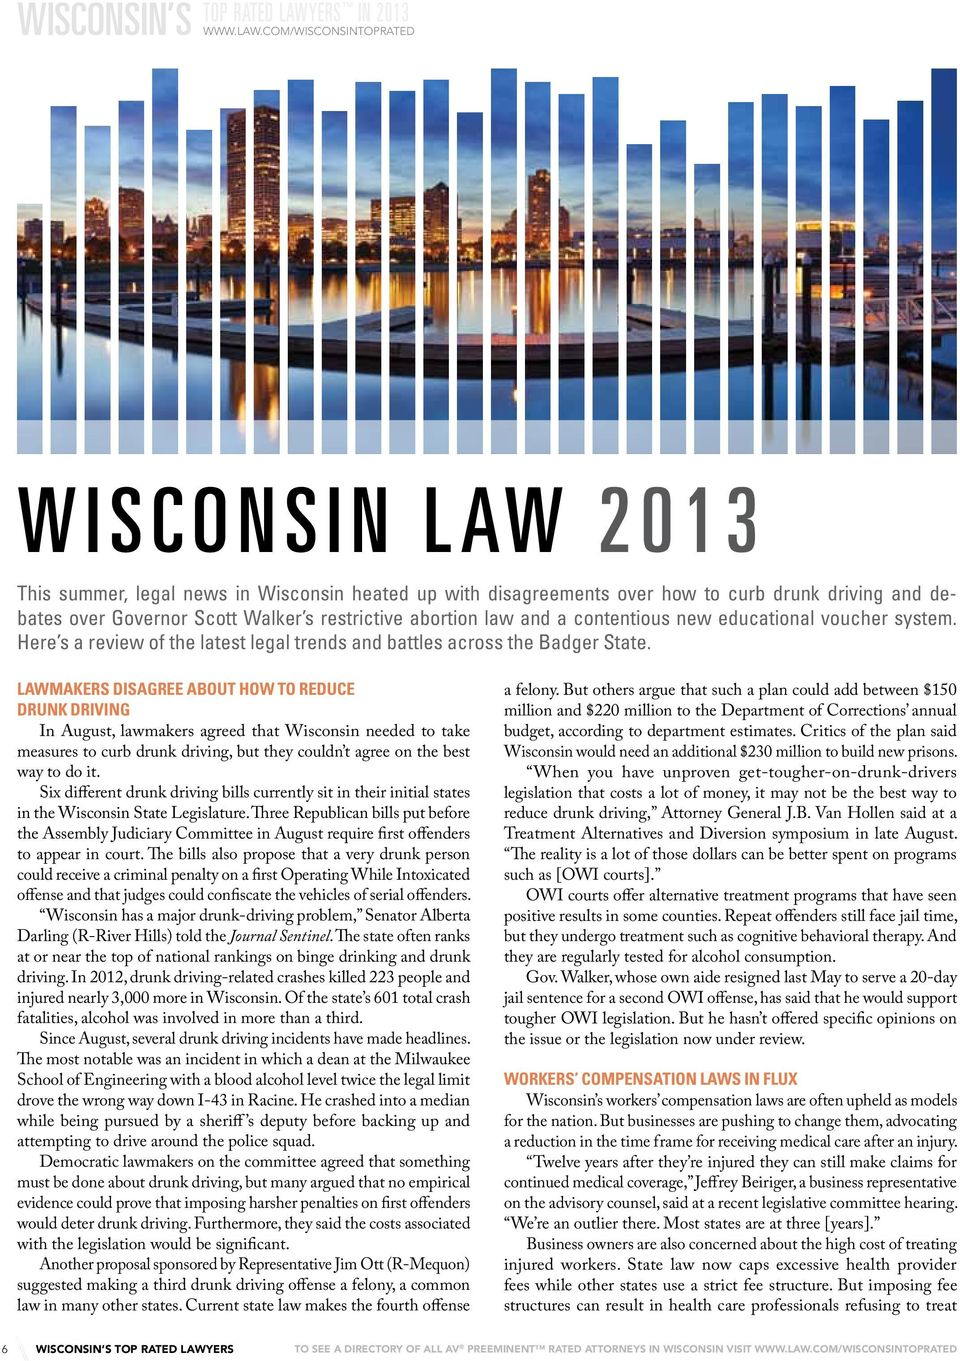 com/wisconsintoprated Wisconsin law 2013 This summer, legal news in Wisconsin heated up with disagreements over how to curb drunk driving and debates over Governor Scott Walker s restrictive abortion